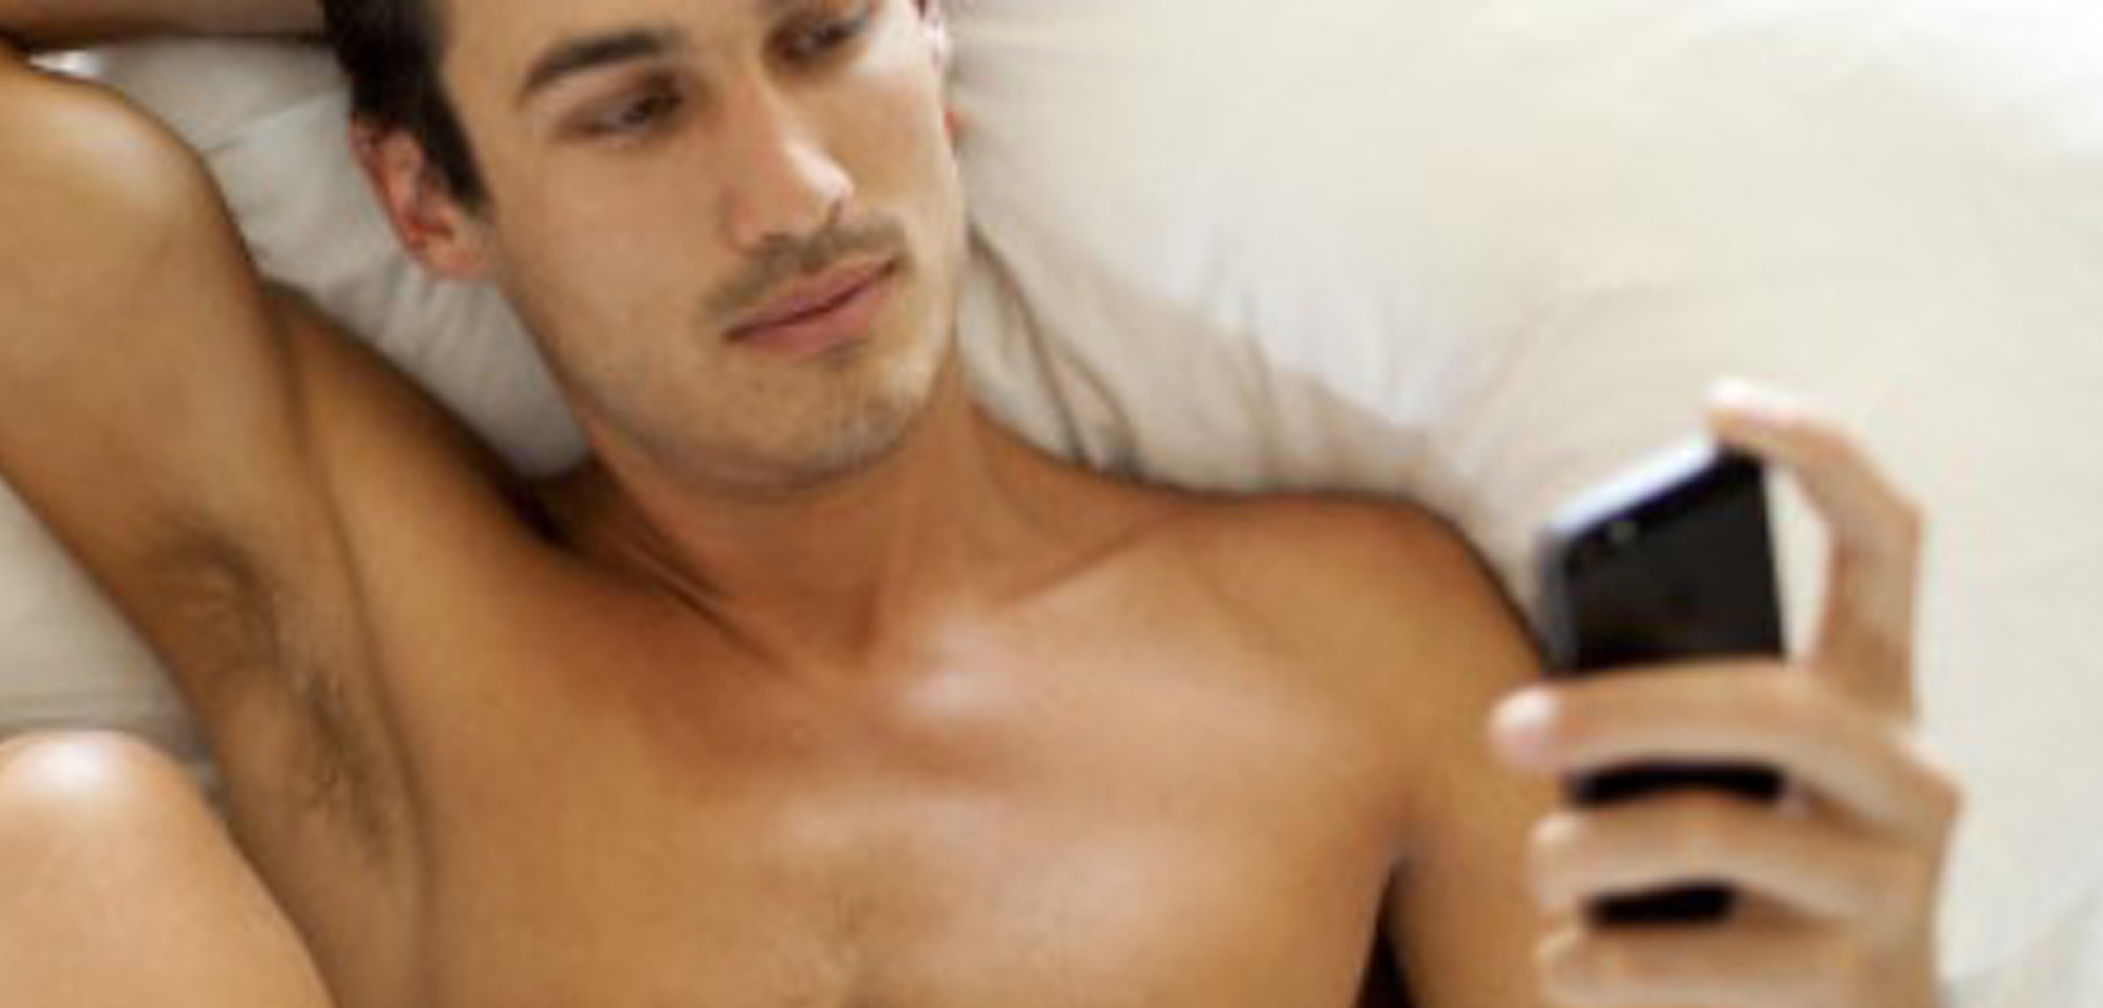 Study Reveals Most Dating App Users Lower Their Standards to Meet Someone